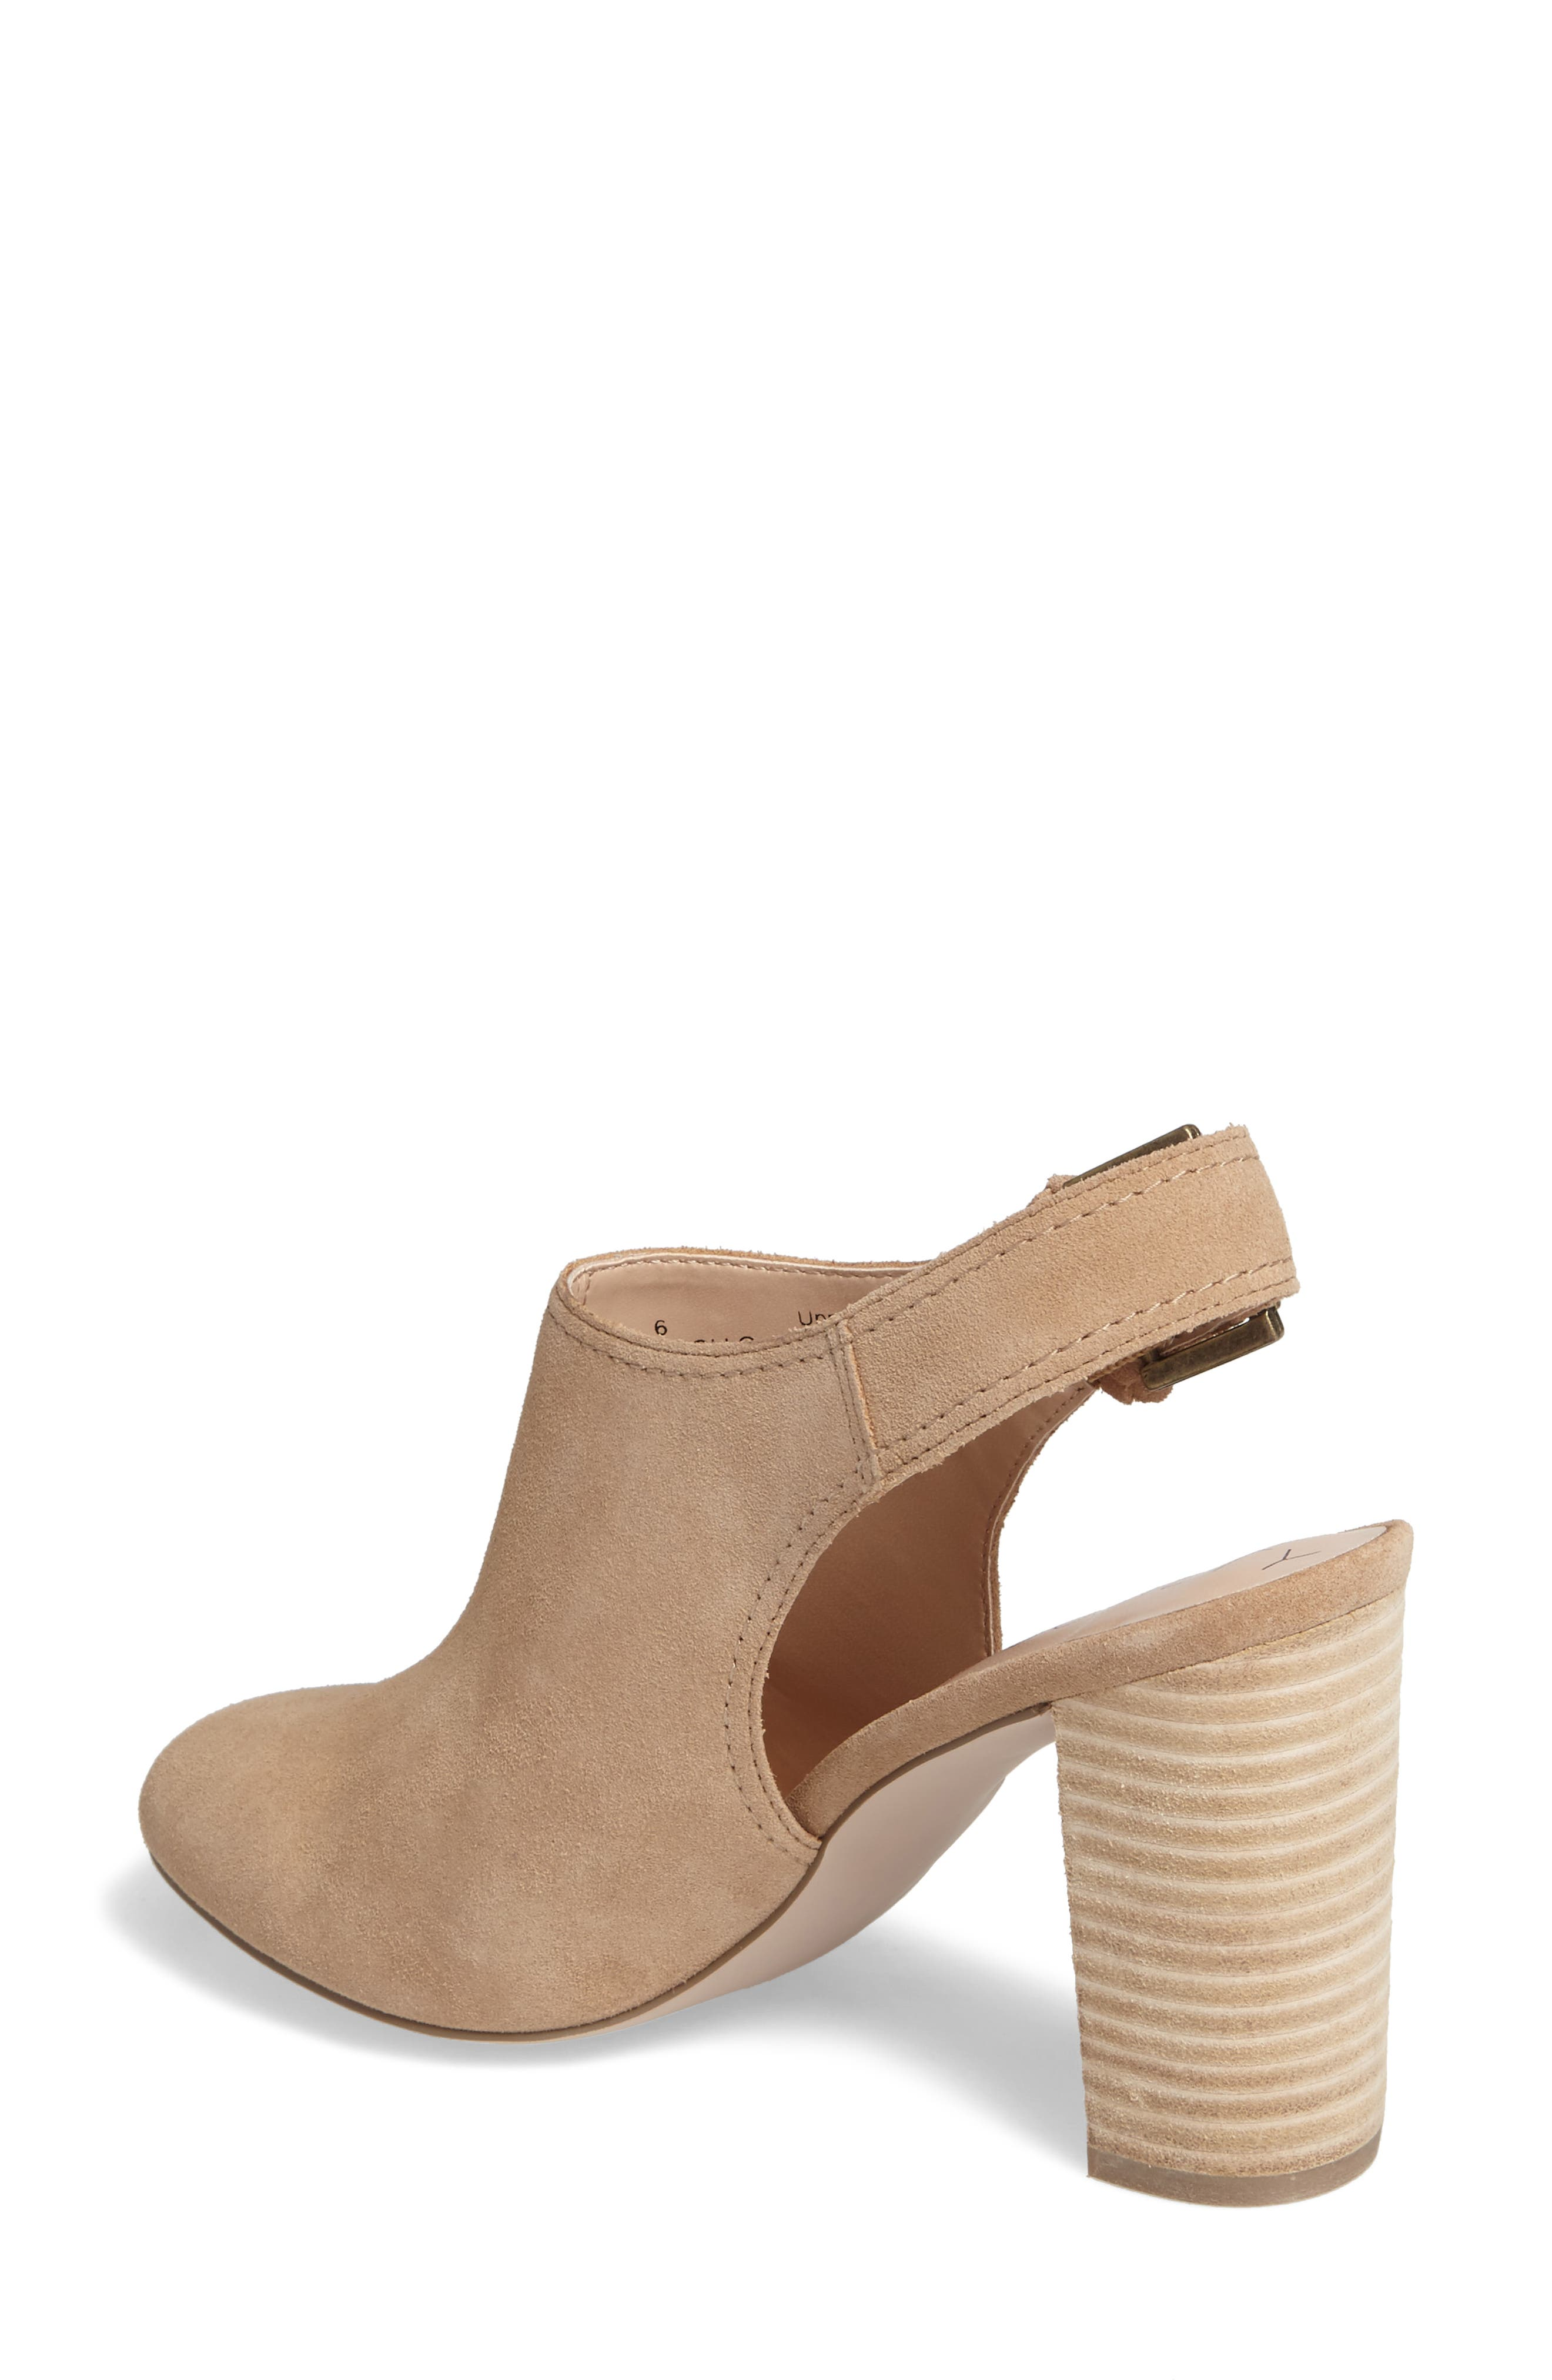 Apollo Slingback Bootie,                             Alternate thumbnail 2, color,                             230